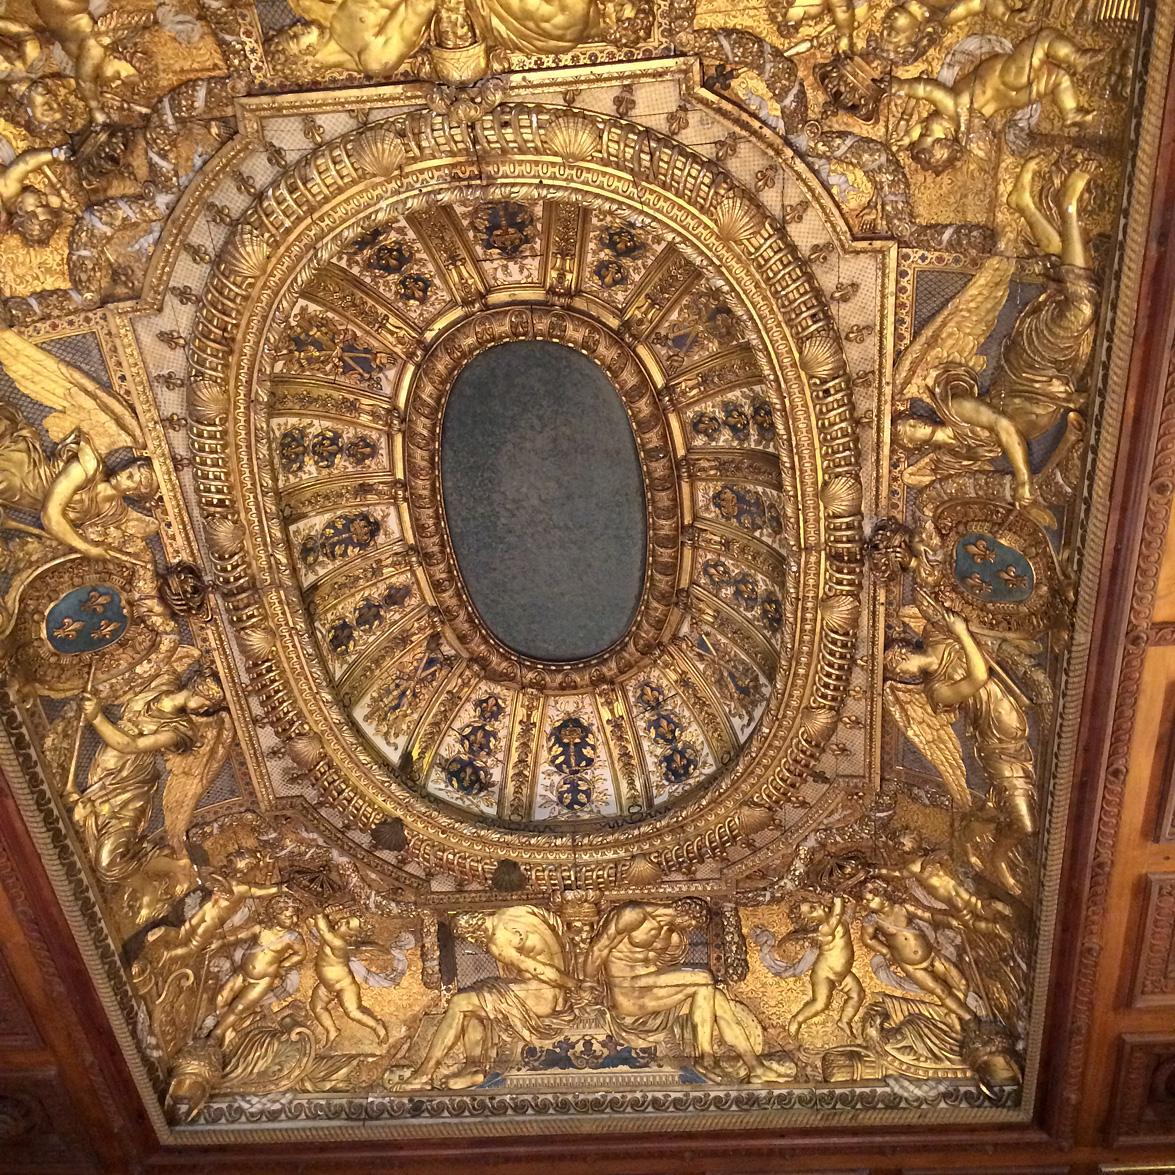 (above) Ceiling detail of the Chambre à alcôve (Alcove Bedchamber). The figures of the captives are by Girardon and Regnaudin, and the Victories by Legendre and Magnier. The painter Eustache Lesueur decorated the oval compartment in the middle with an allegory showing Time abducting a woman holding a lily. Unfortunately this painting has since disappeared.